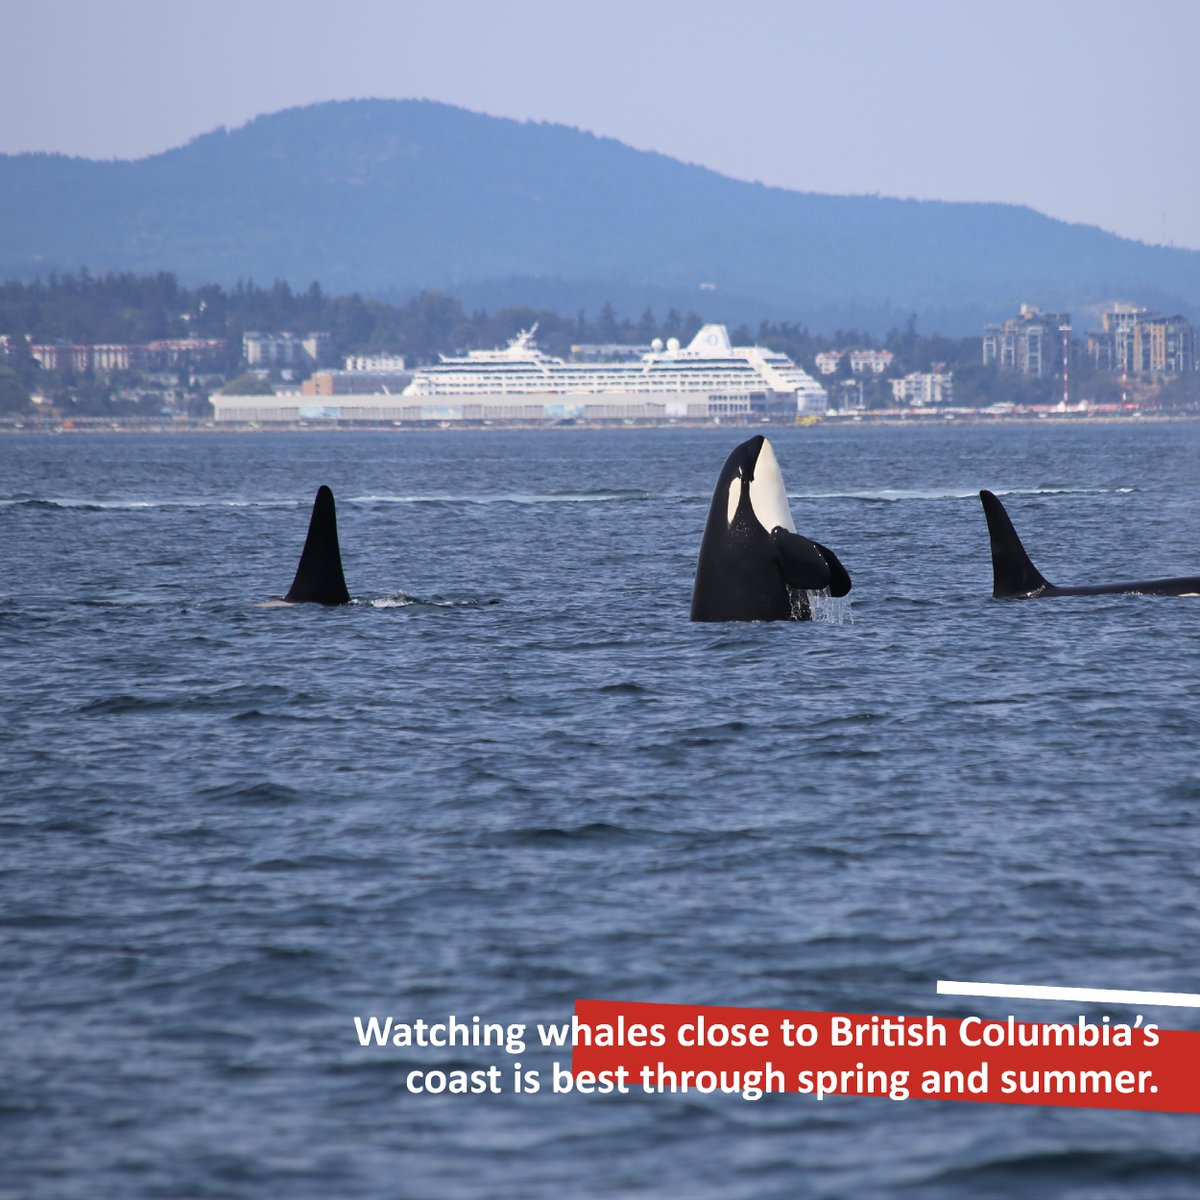 Prime whale watching season close to British Columbia's coast is best through spring and summer.   Have you ever been whale watching?  #beautifulbritishcolumbia #whalewatching   1: Dick Martin 2: Luc Tribolet 3: Thomas Lipke pic.twitter.com/TjgGebfsqG